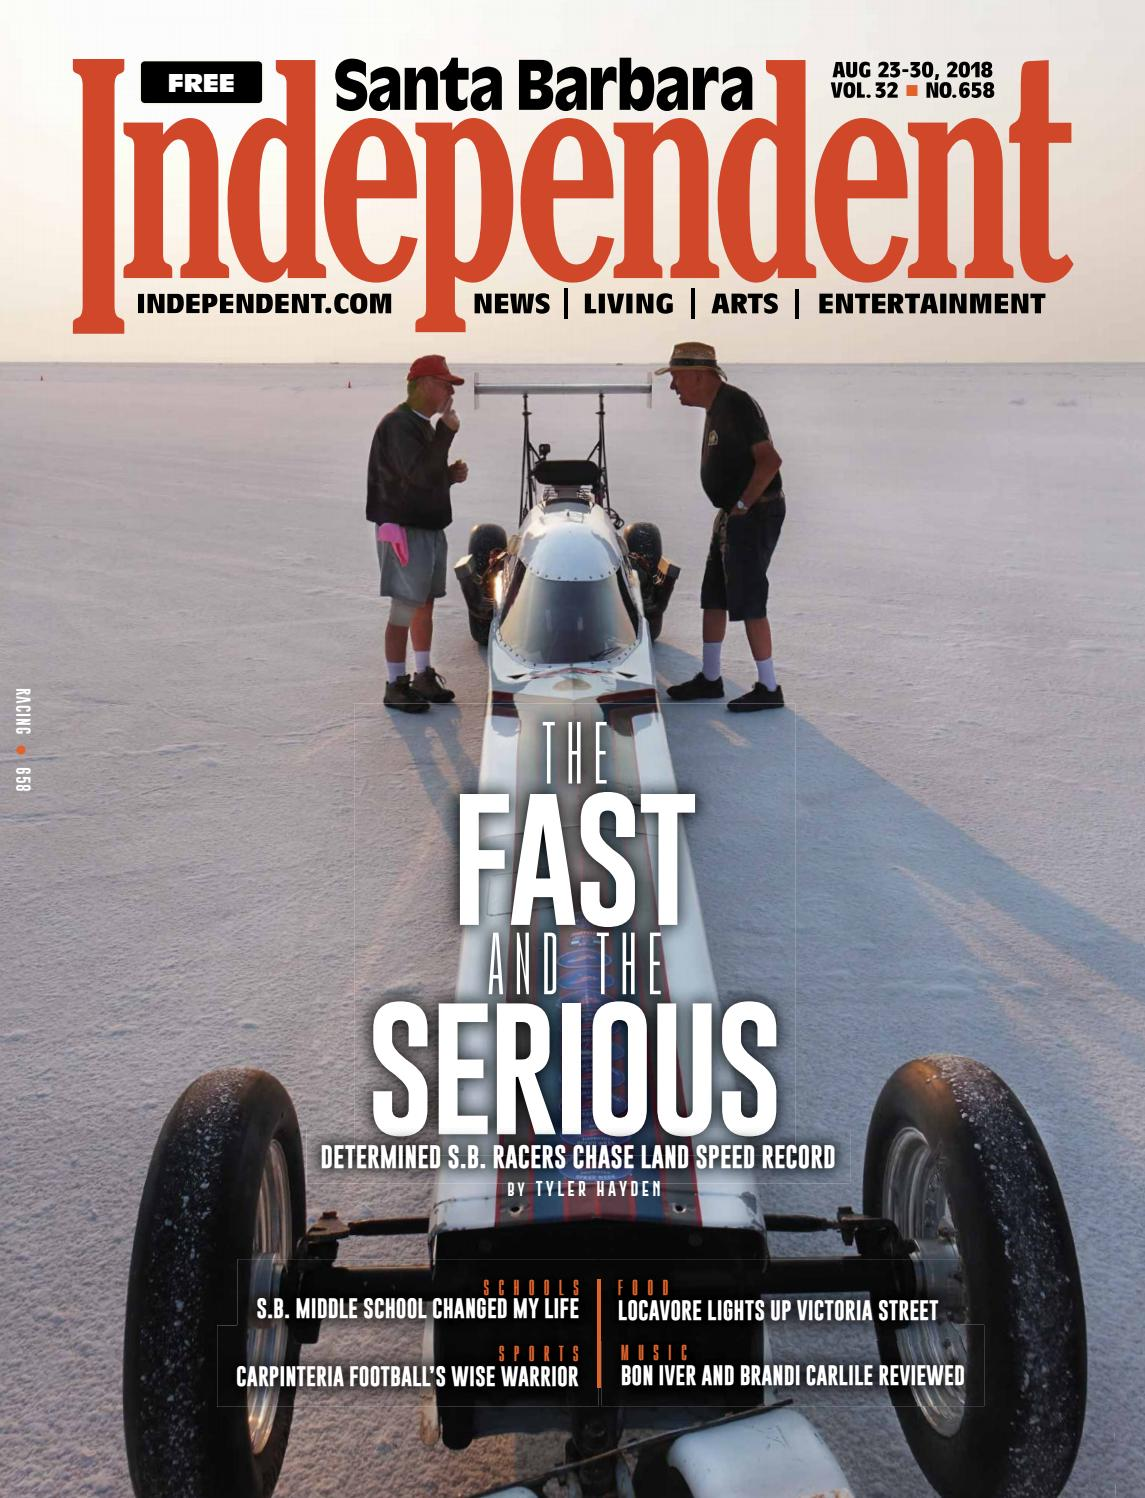 Santa Barbara Independent, 082318 by SB Independent issuu